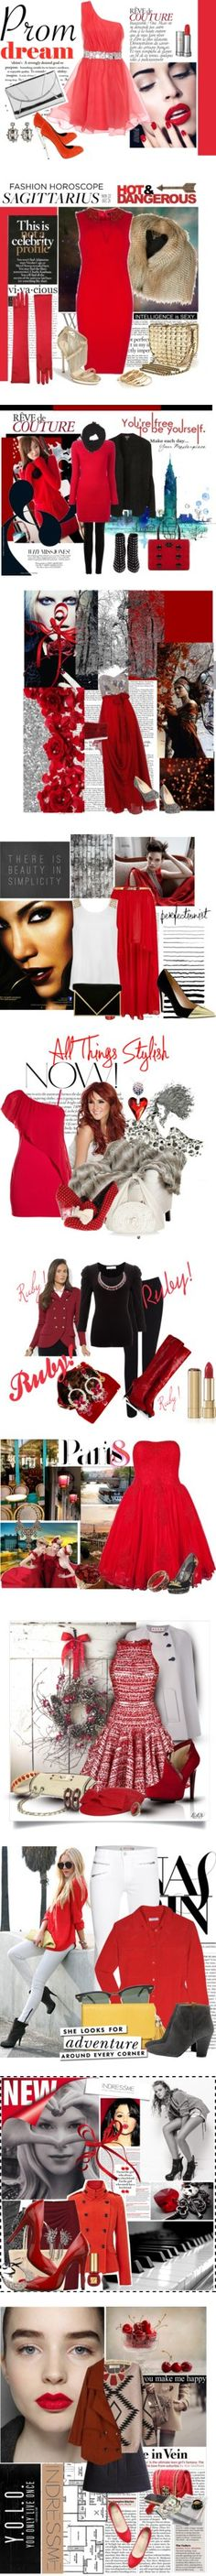 """Red 3"" by elena-indolfi on Polyvore"